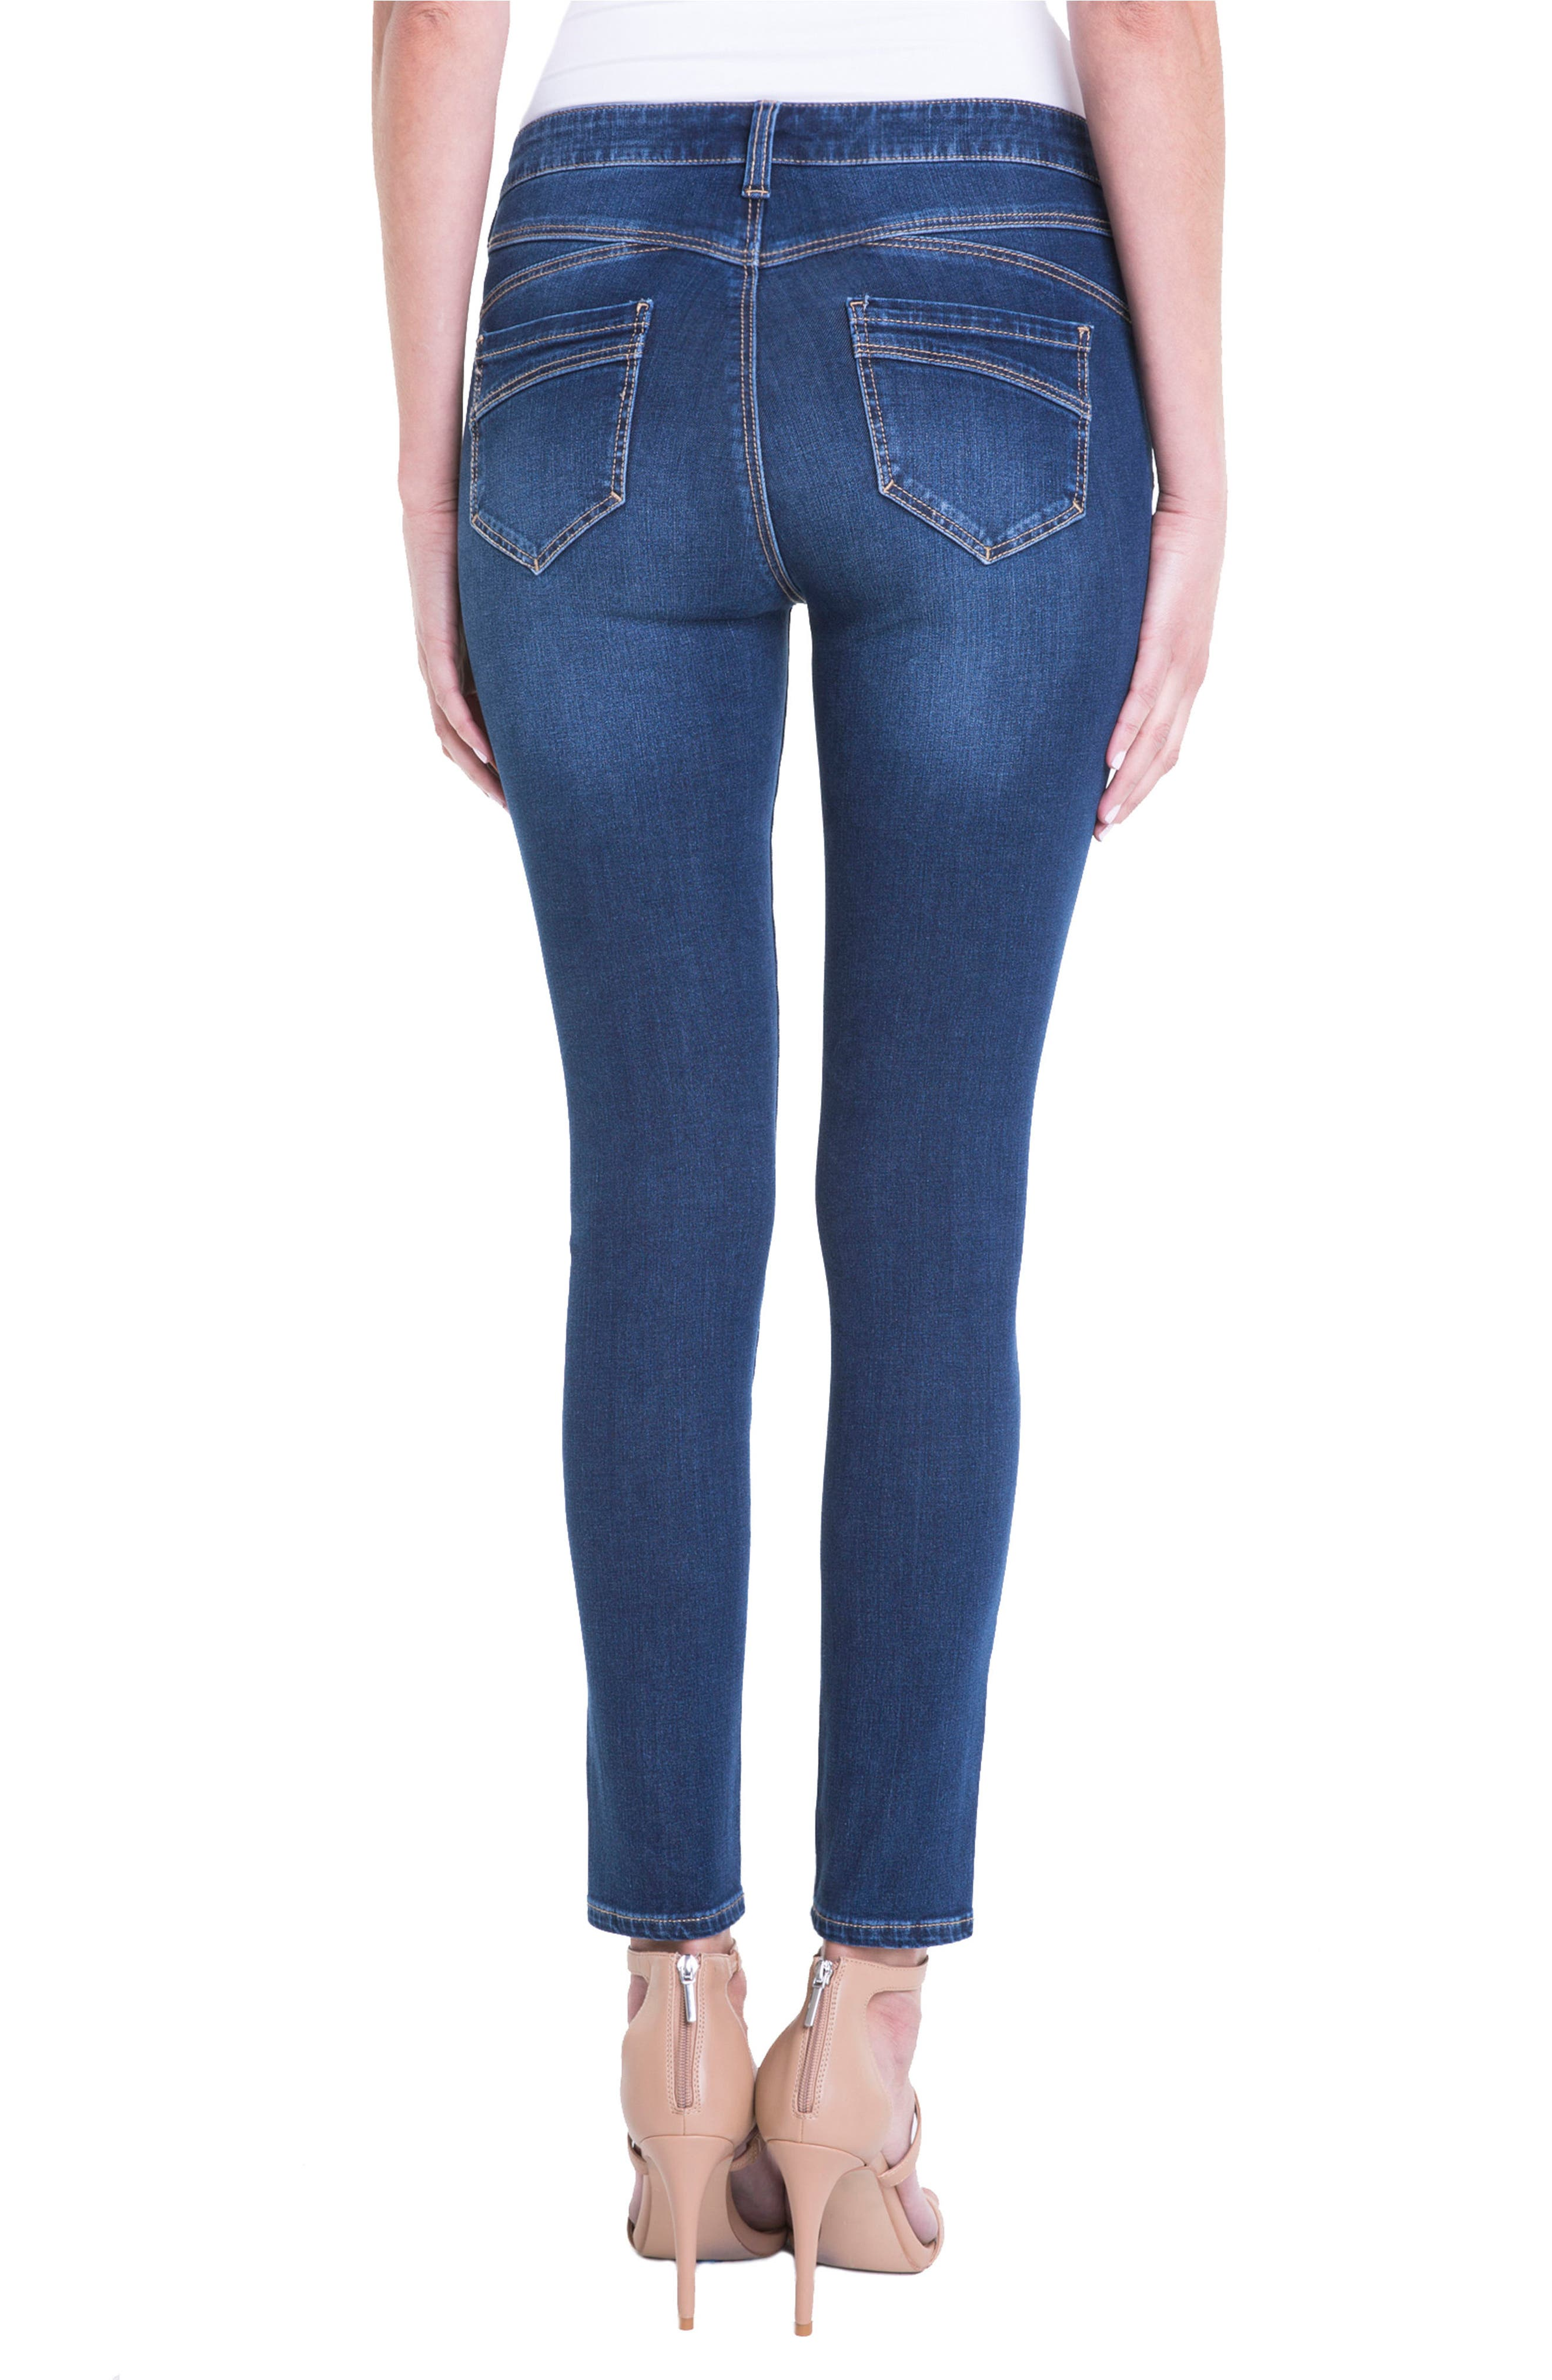 Jeans Company Piper Hugger Lift Sculpt Ankle Skinny Jeans,                             Alternate thumbnail 2, color,                             Lynx Wash